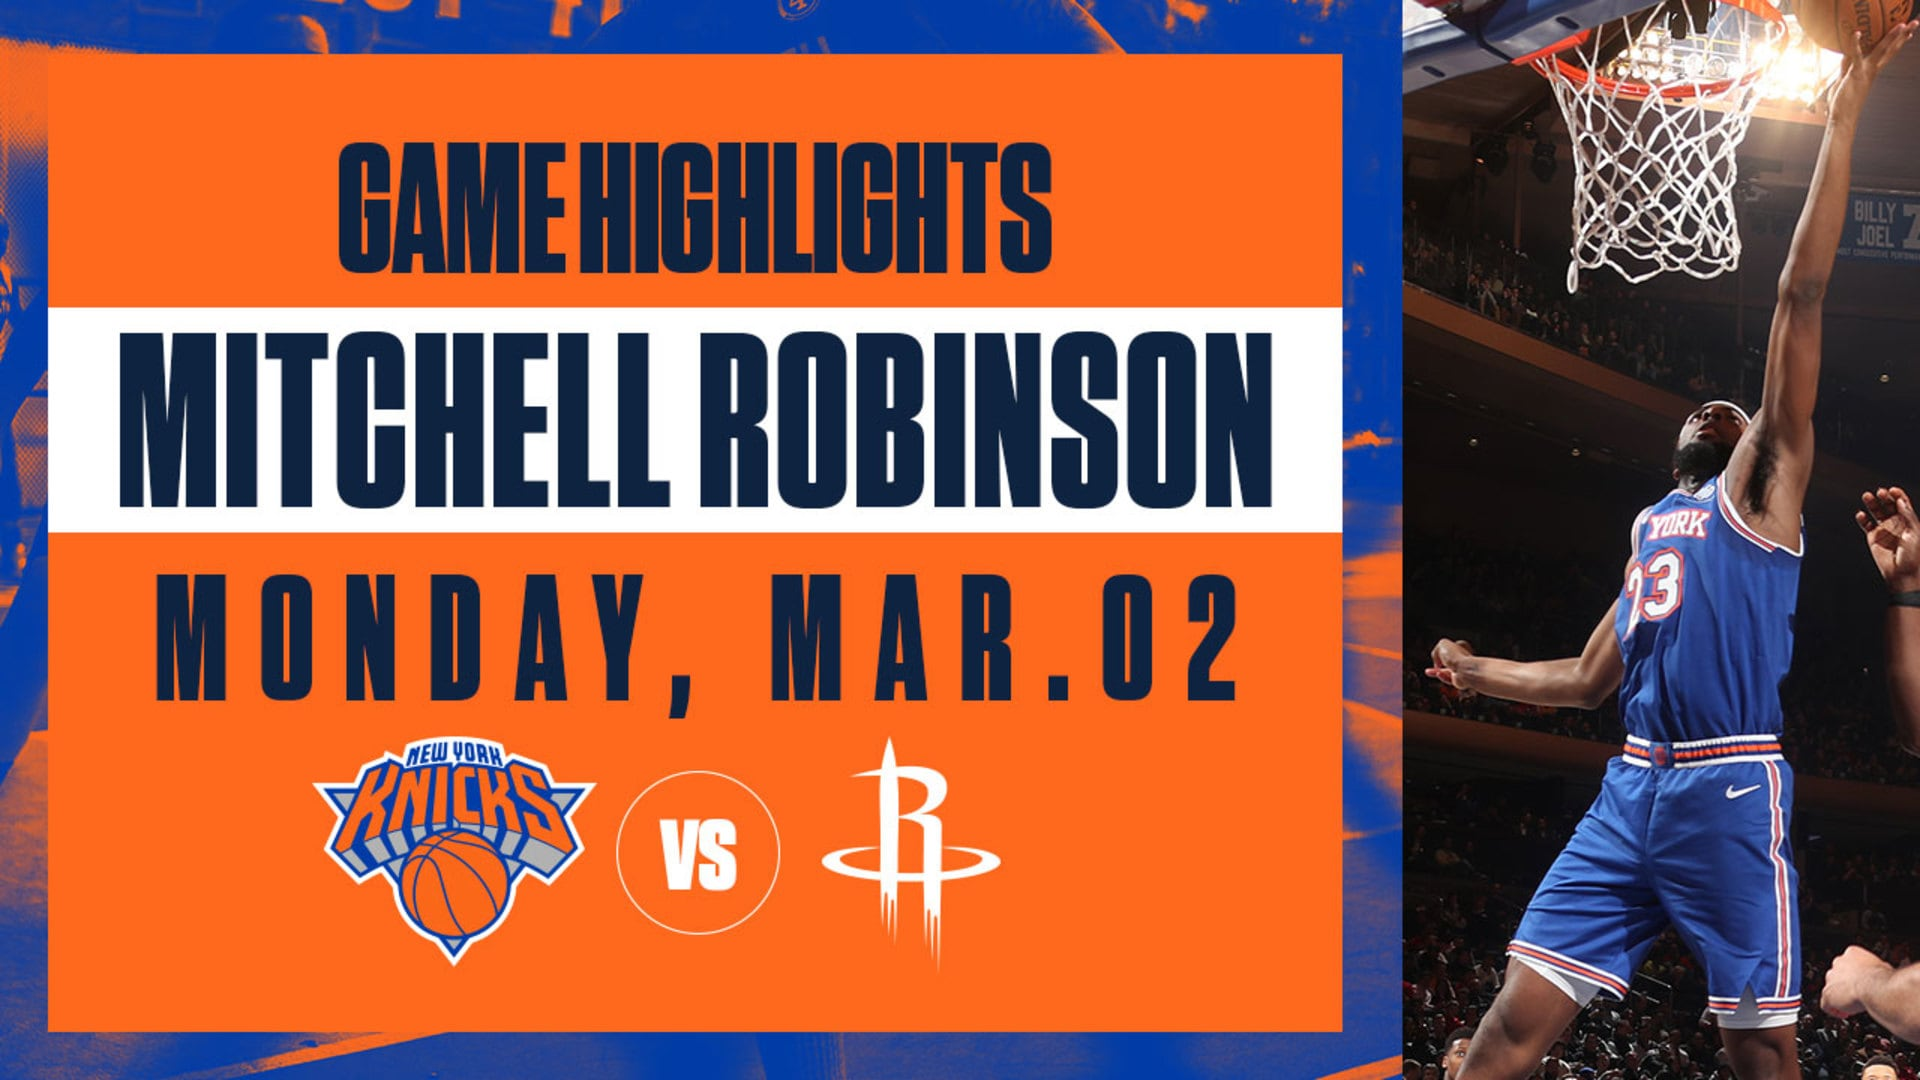 Highlights: Mitchell Robinson (12 Pts / 13 Reb) | Knicks vs. Rockets